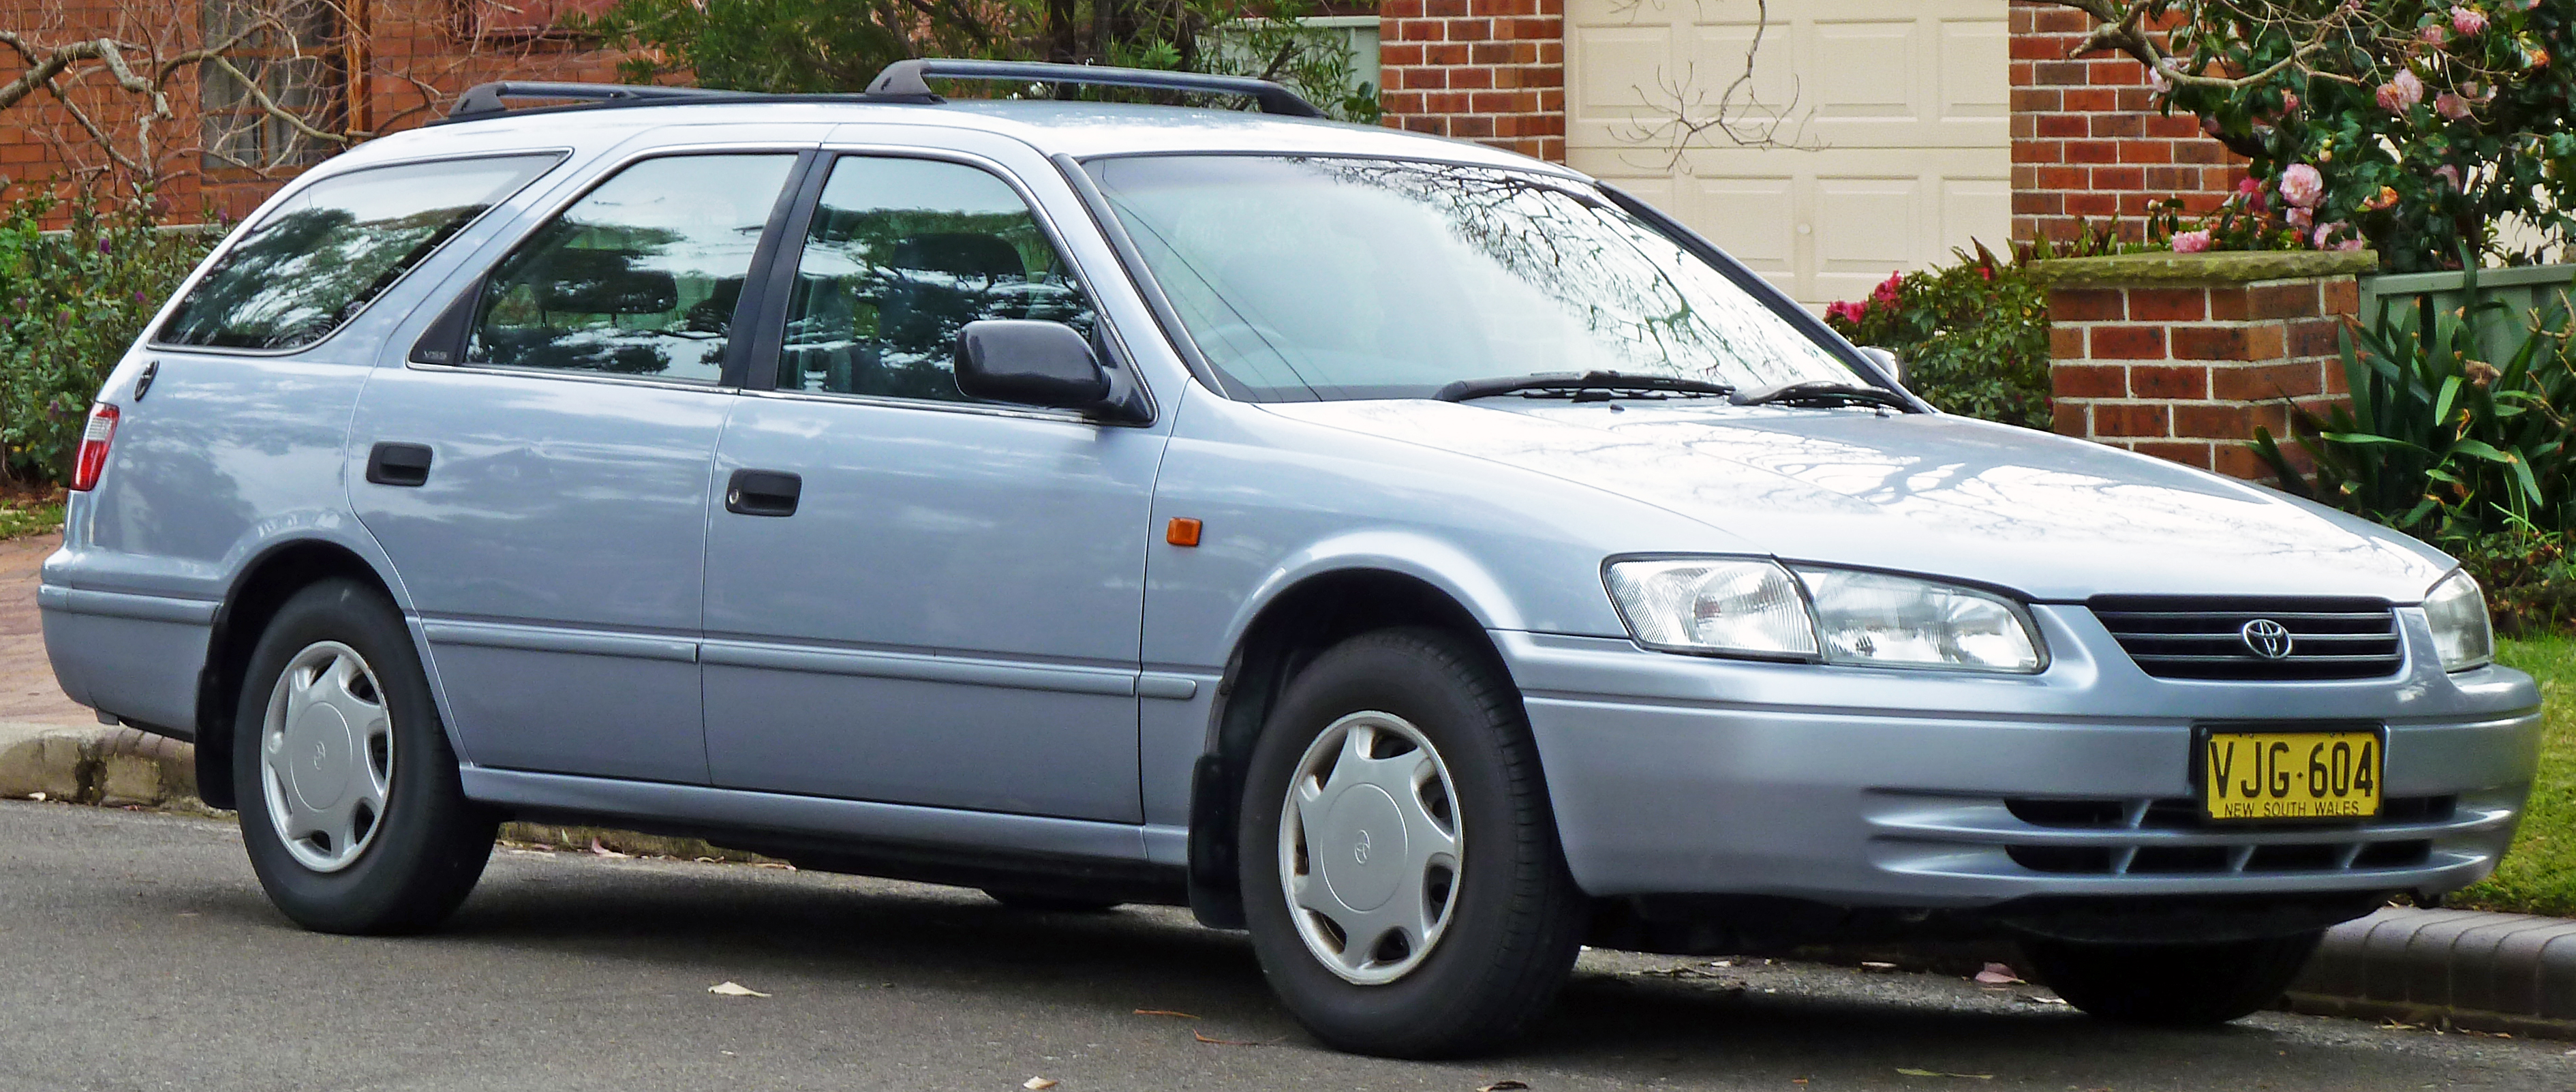 2000 Toyota Camry Station Wagon Xv20 Pictures